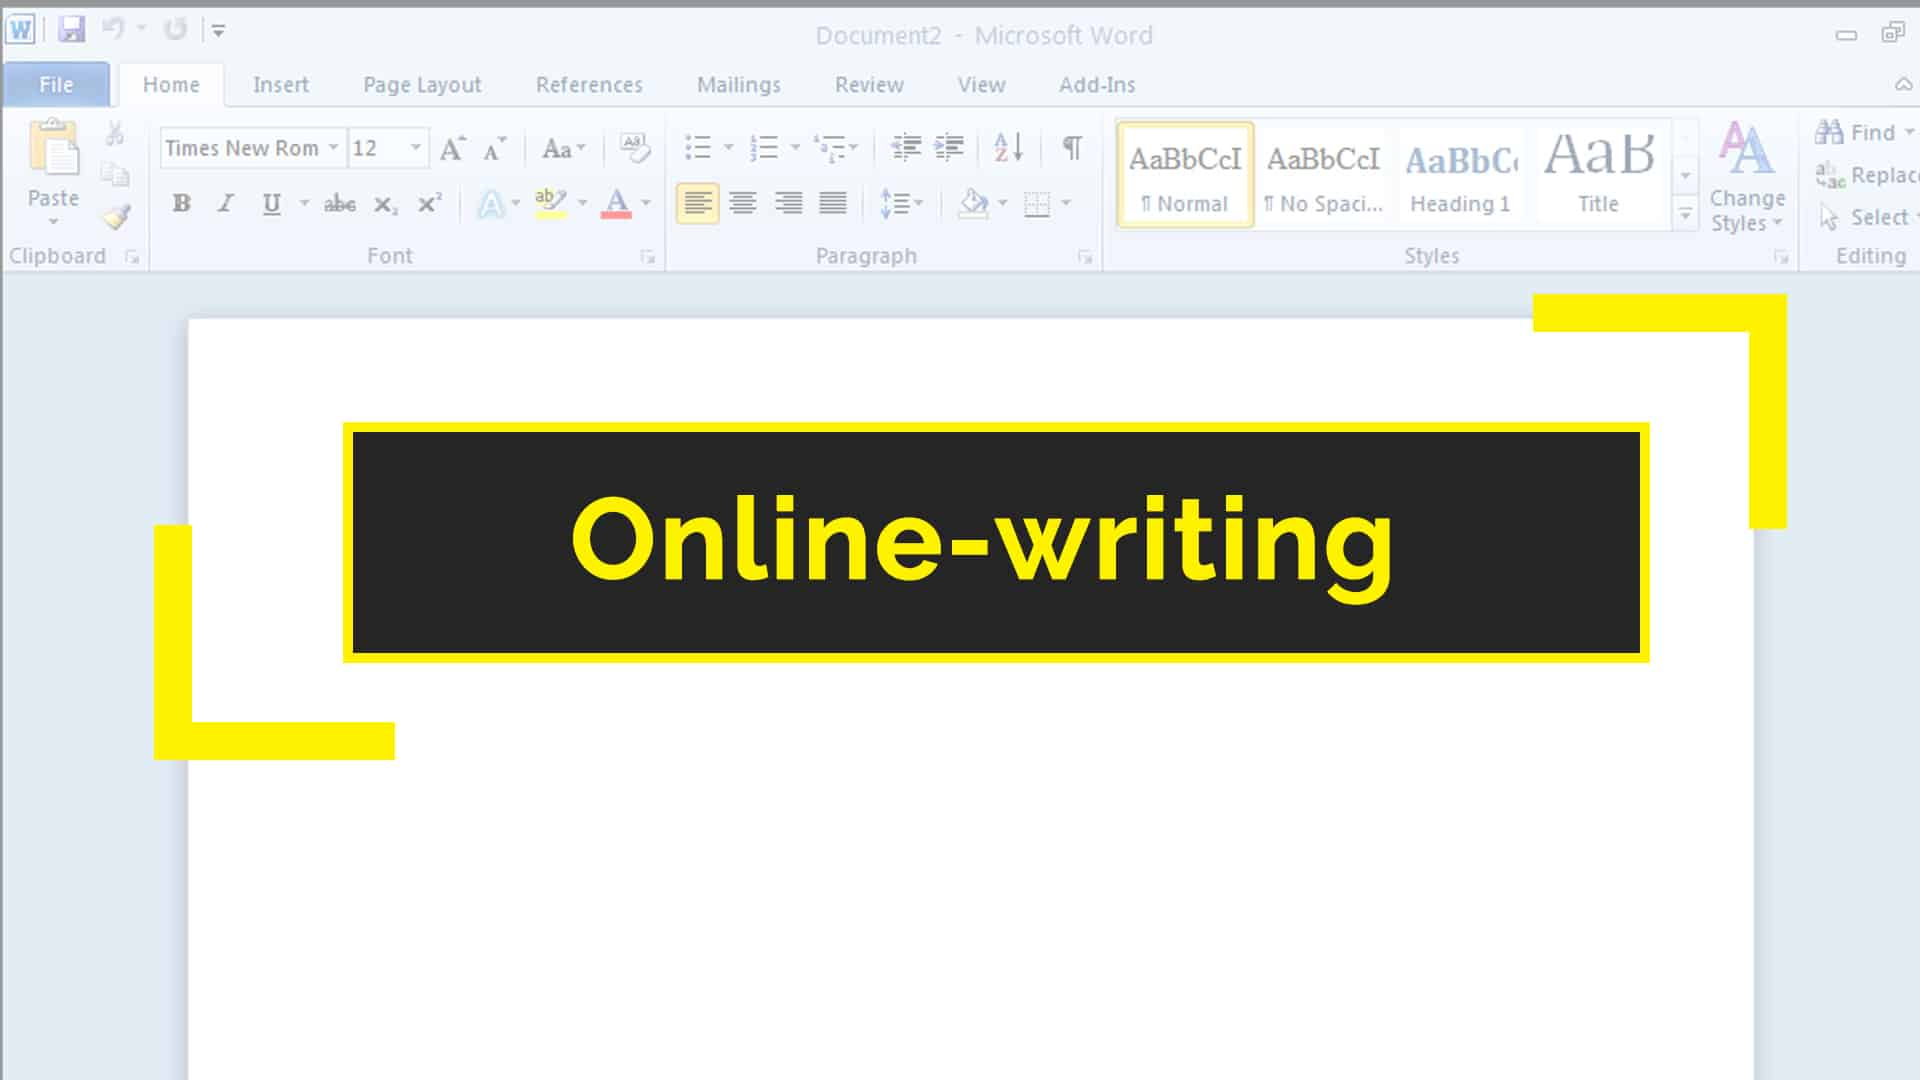 Online-writing